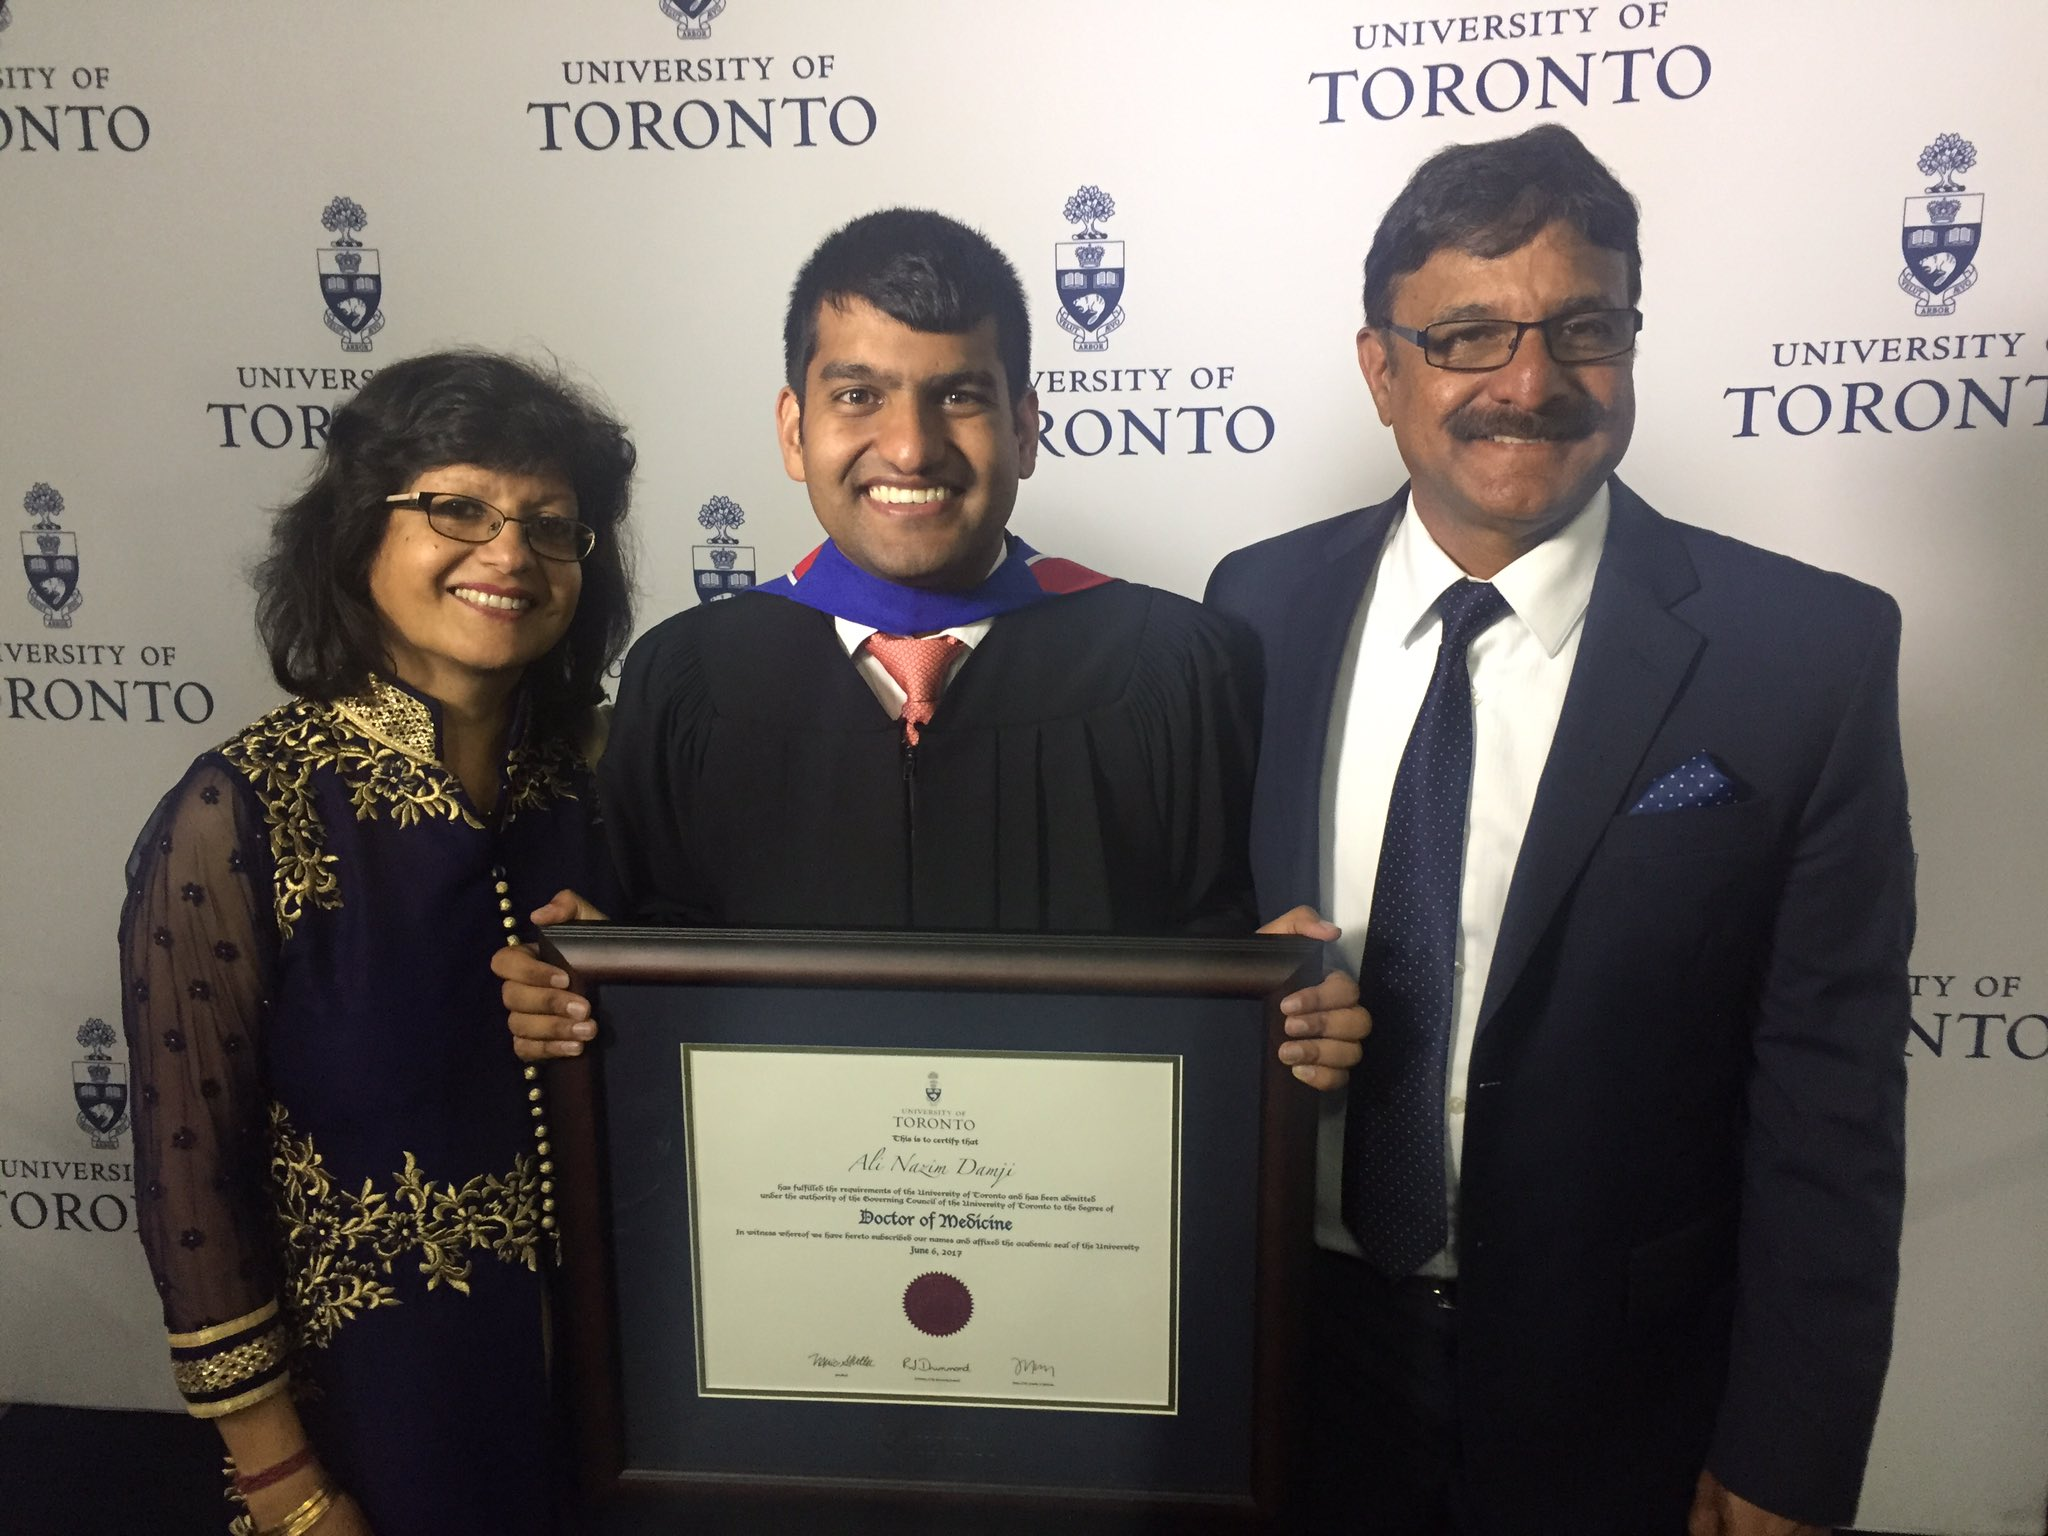 It's official! I'm Ali Damji, MD! Thank you family, friends, and mentors for being there for me every step of the way. #UofTGrad17 #UofTMed https://t.co/uTjLdZOub4